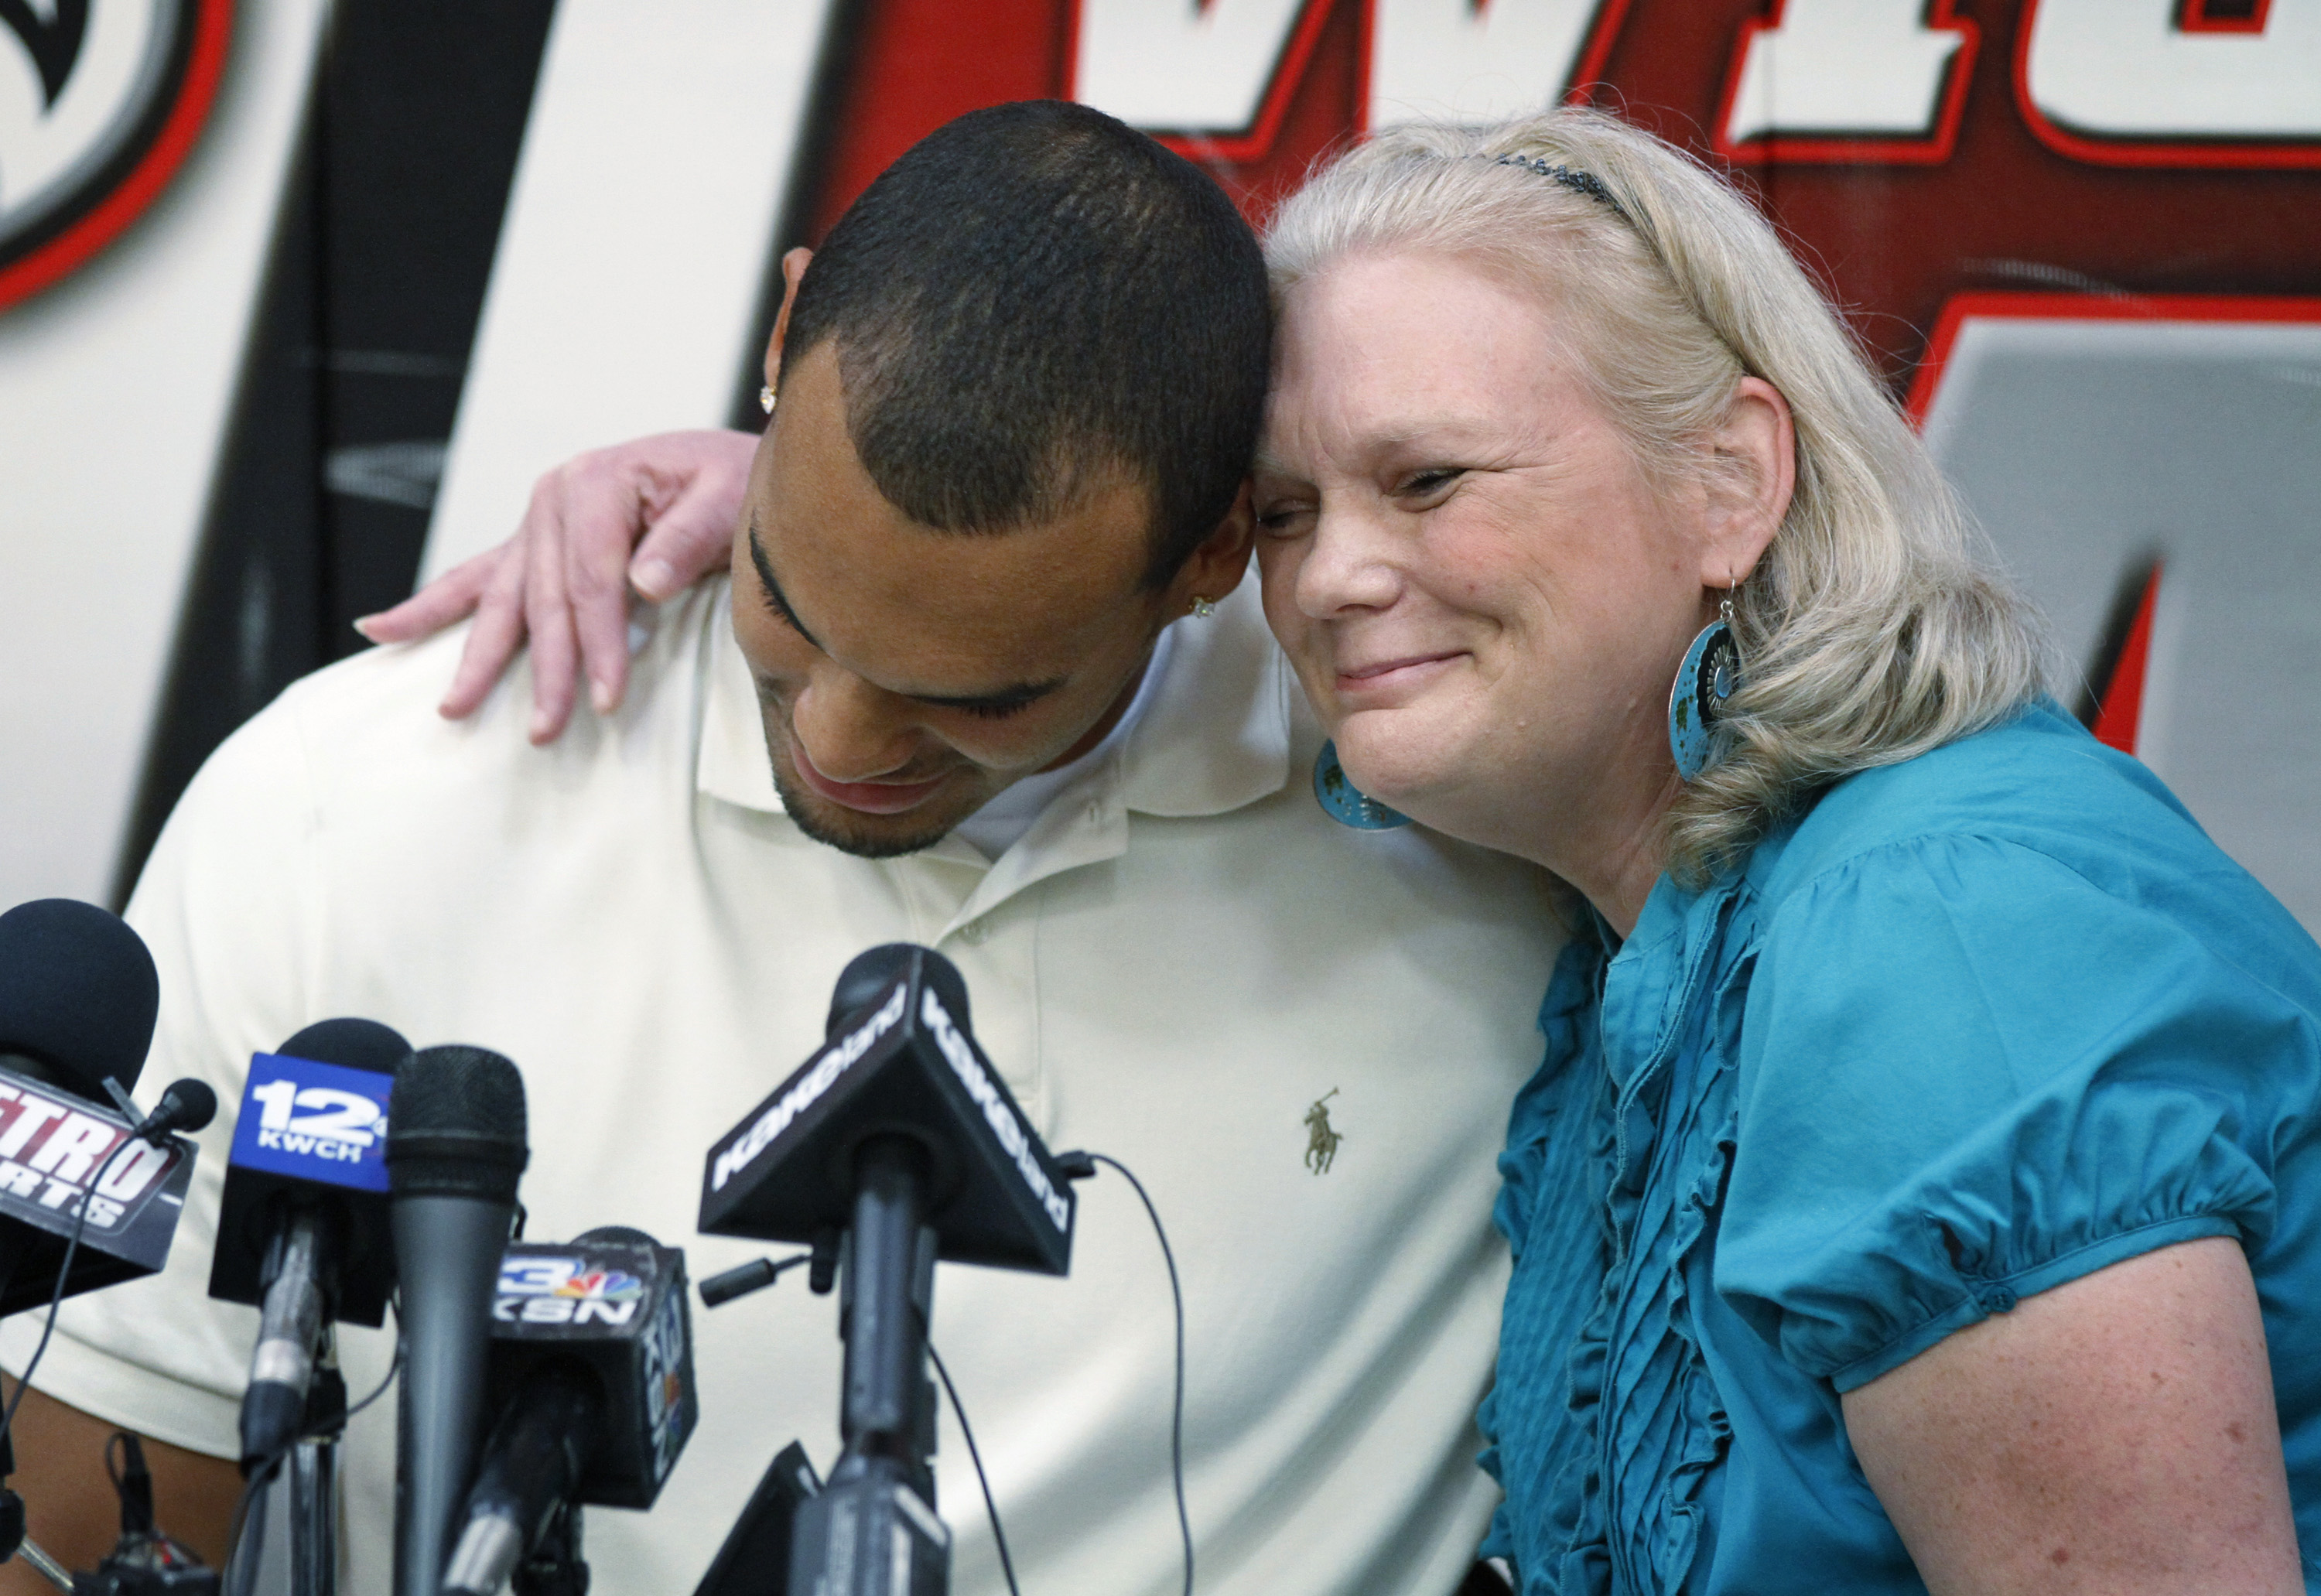 FILE - In this Sept. 21, 2011, file photo, Perry Ellis gets a hug from his mother, Fonda Ellis, after announcing his intention to play basketball at Kansas, during a news conference at Heights High School in Wichita. When Perry Ellis plays his final home